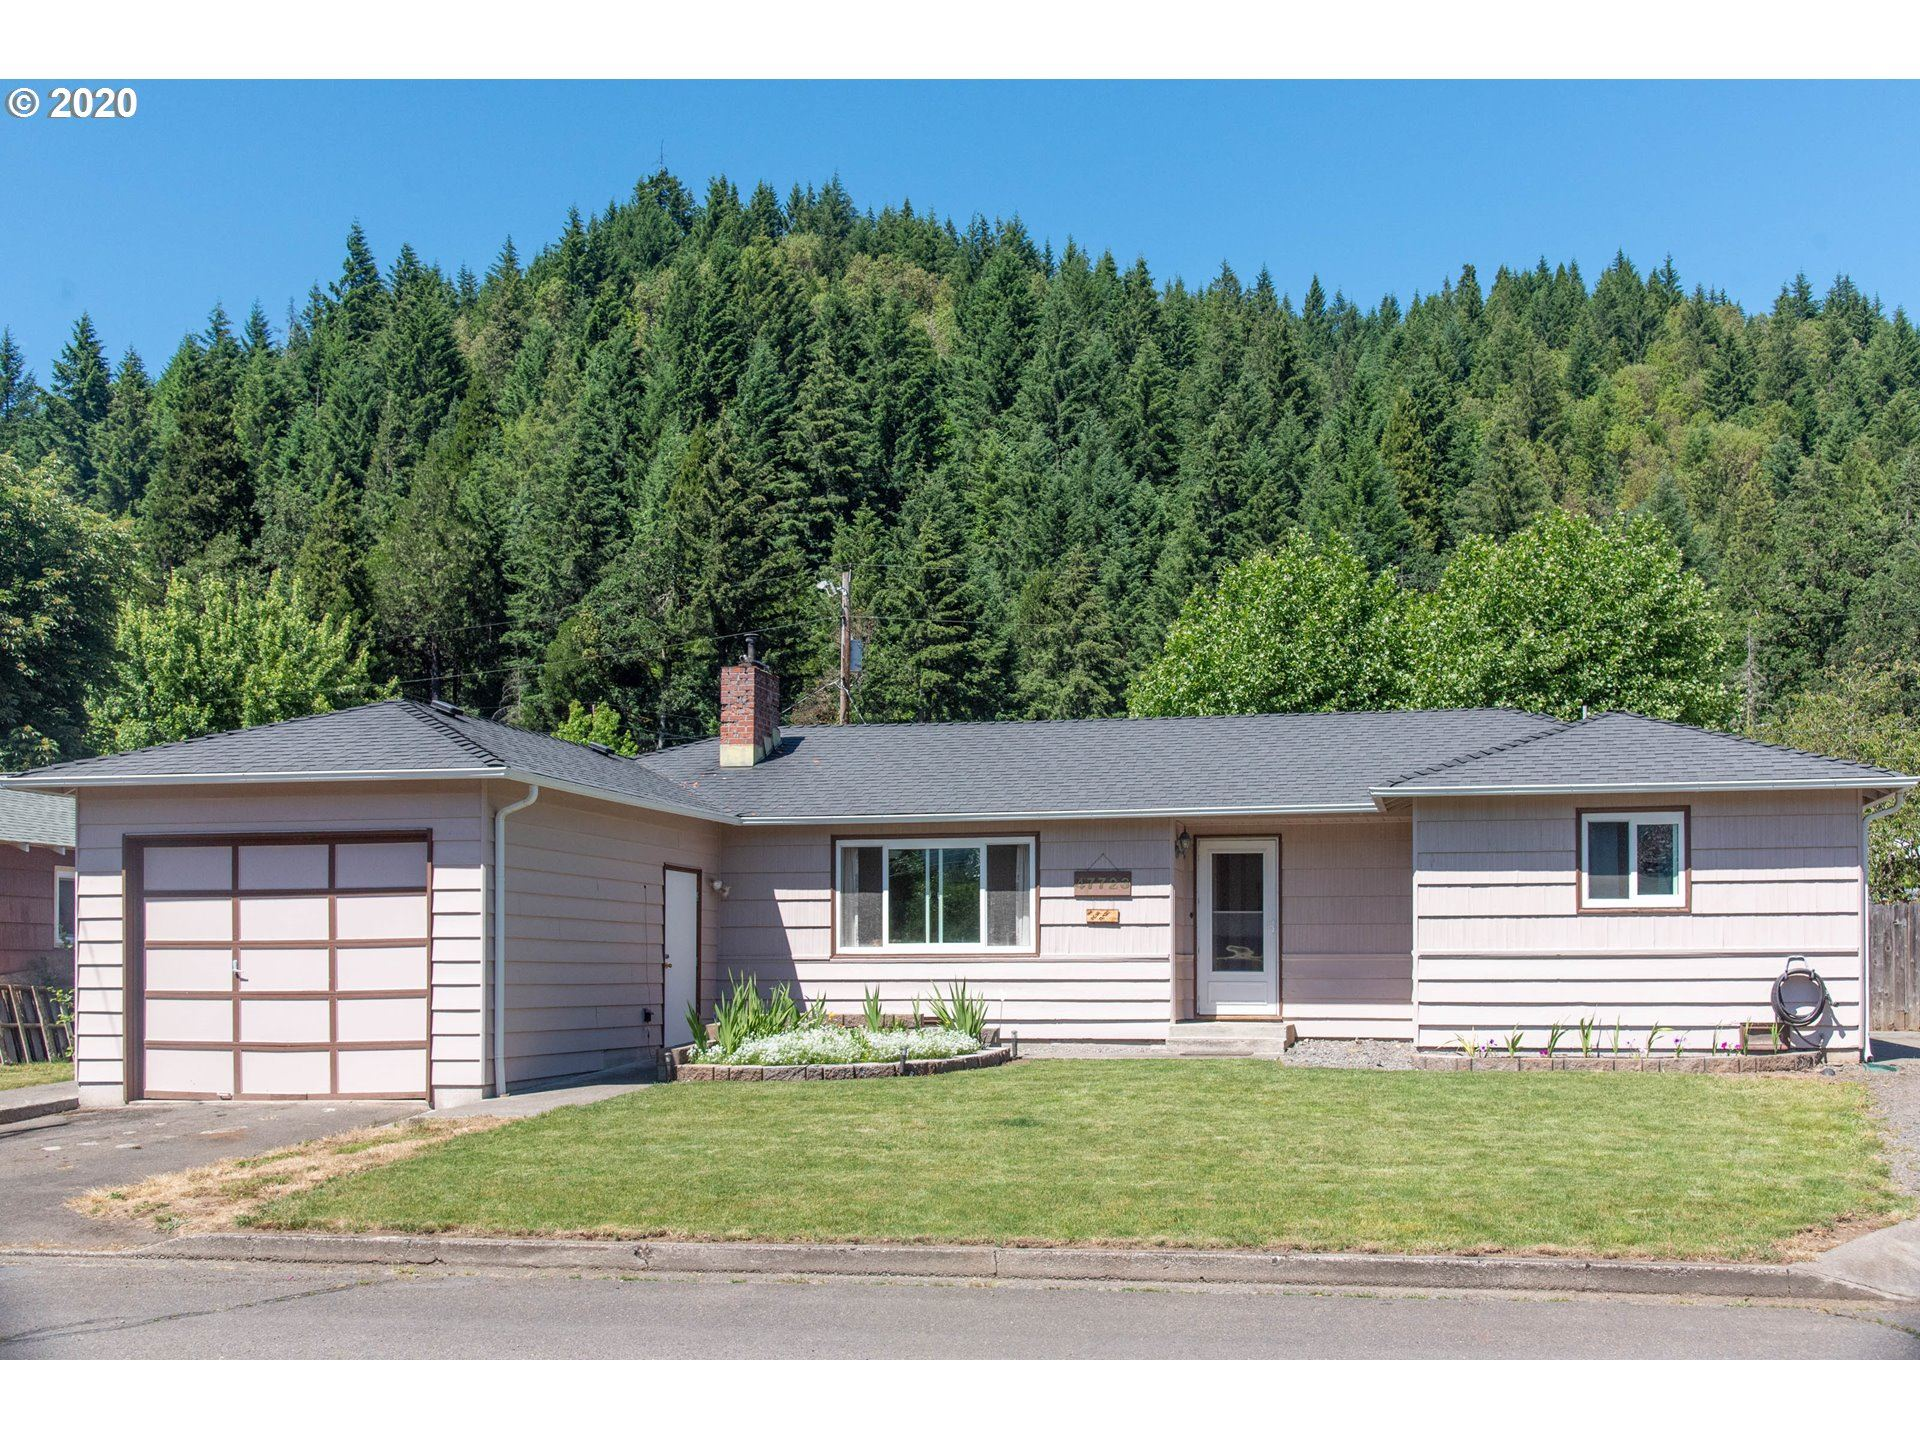 Photo for 47723 W 2ND ST, Oakridge, OR 97463 (MLS # 20081371)